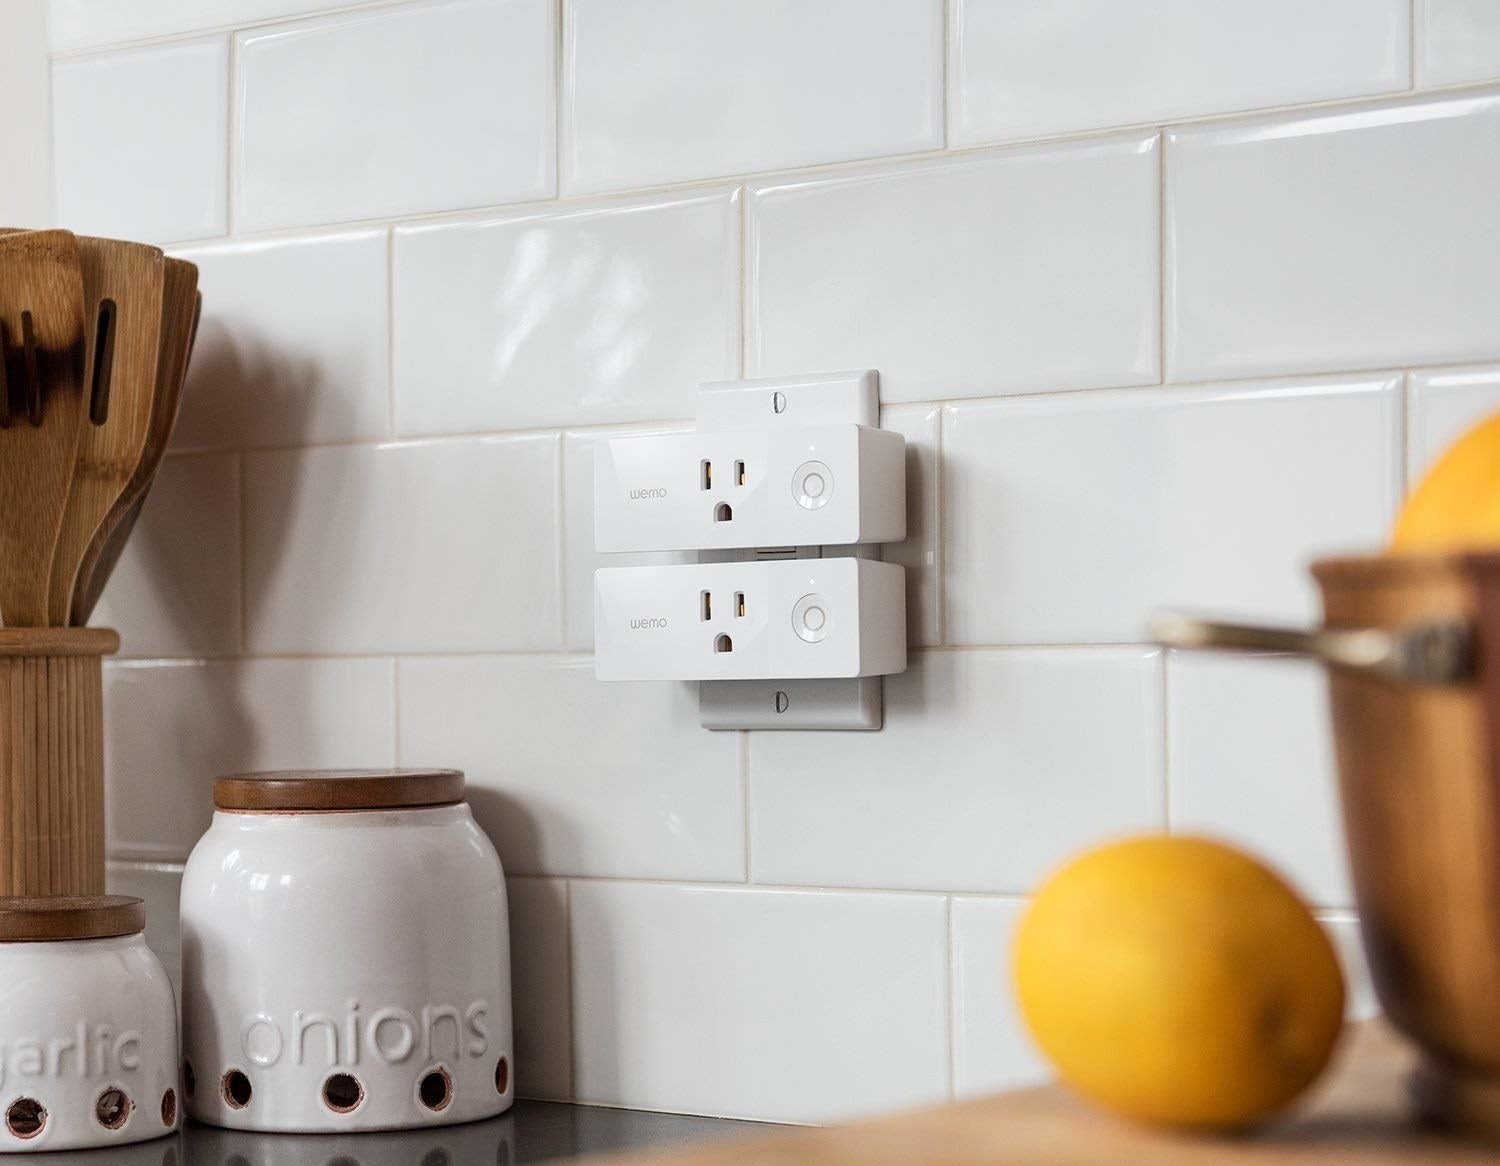 Two smart plugs in a kitchen outlet